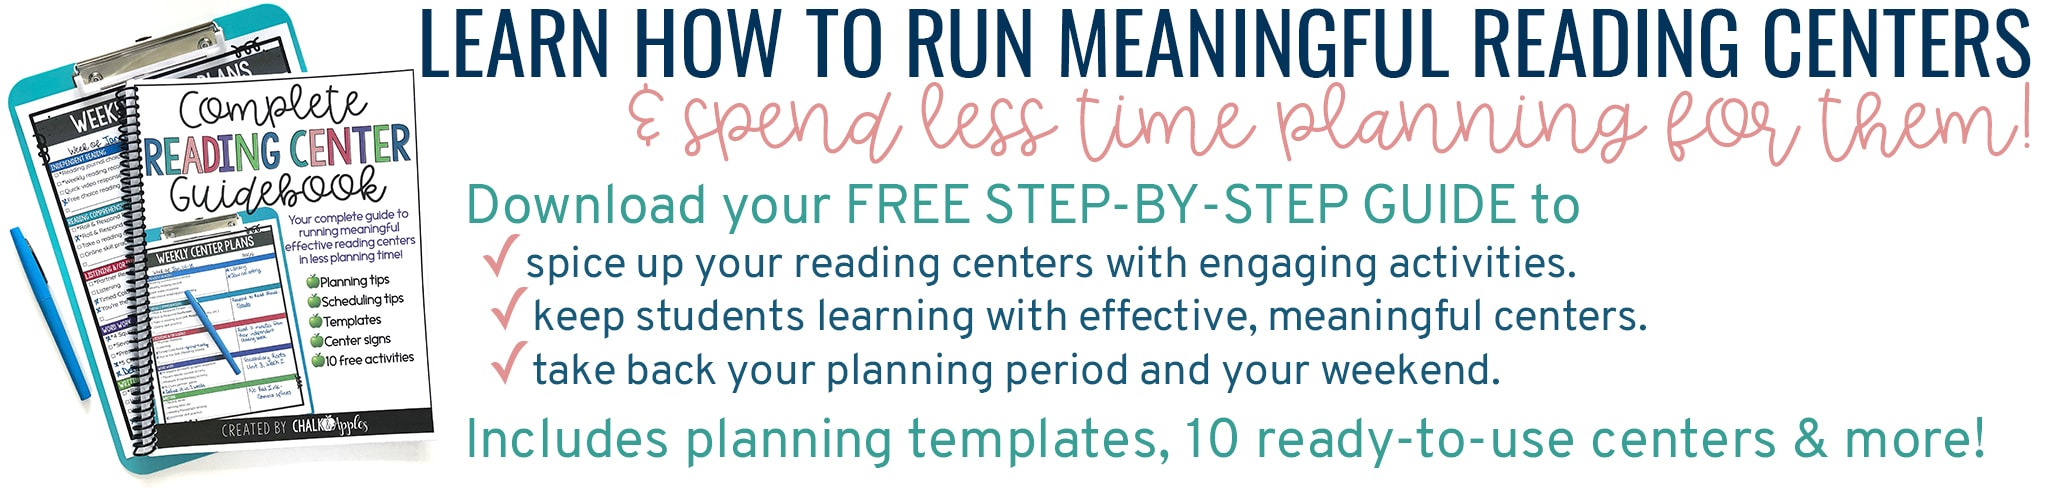 Learn how to run meaningful reading centers and spend LESS time planning them!